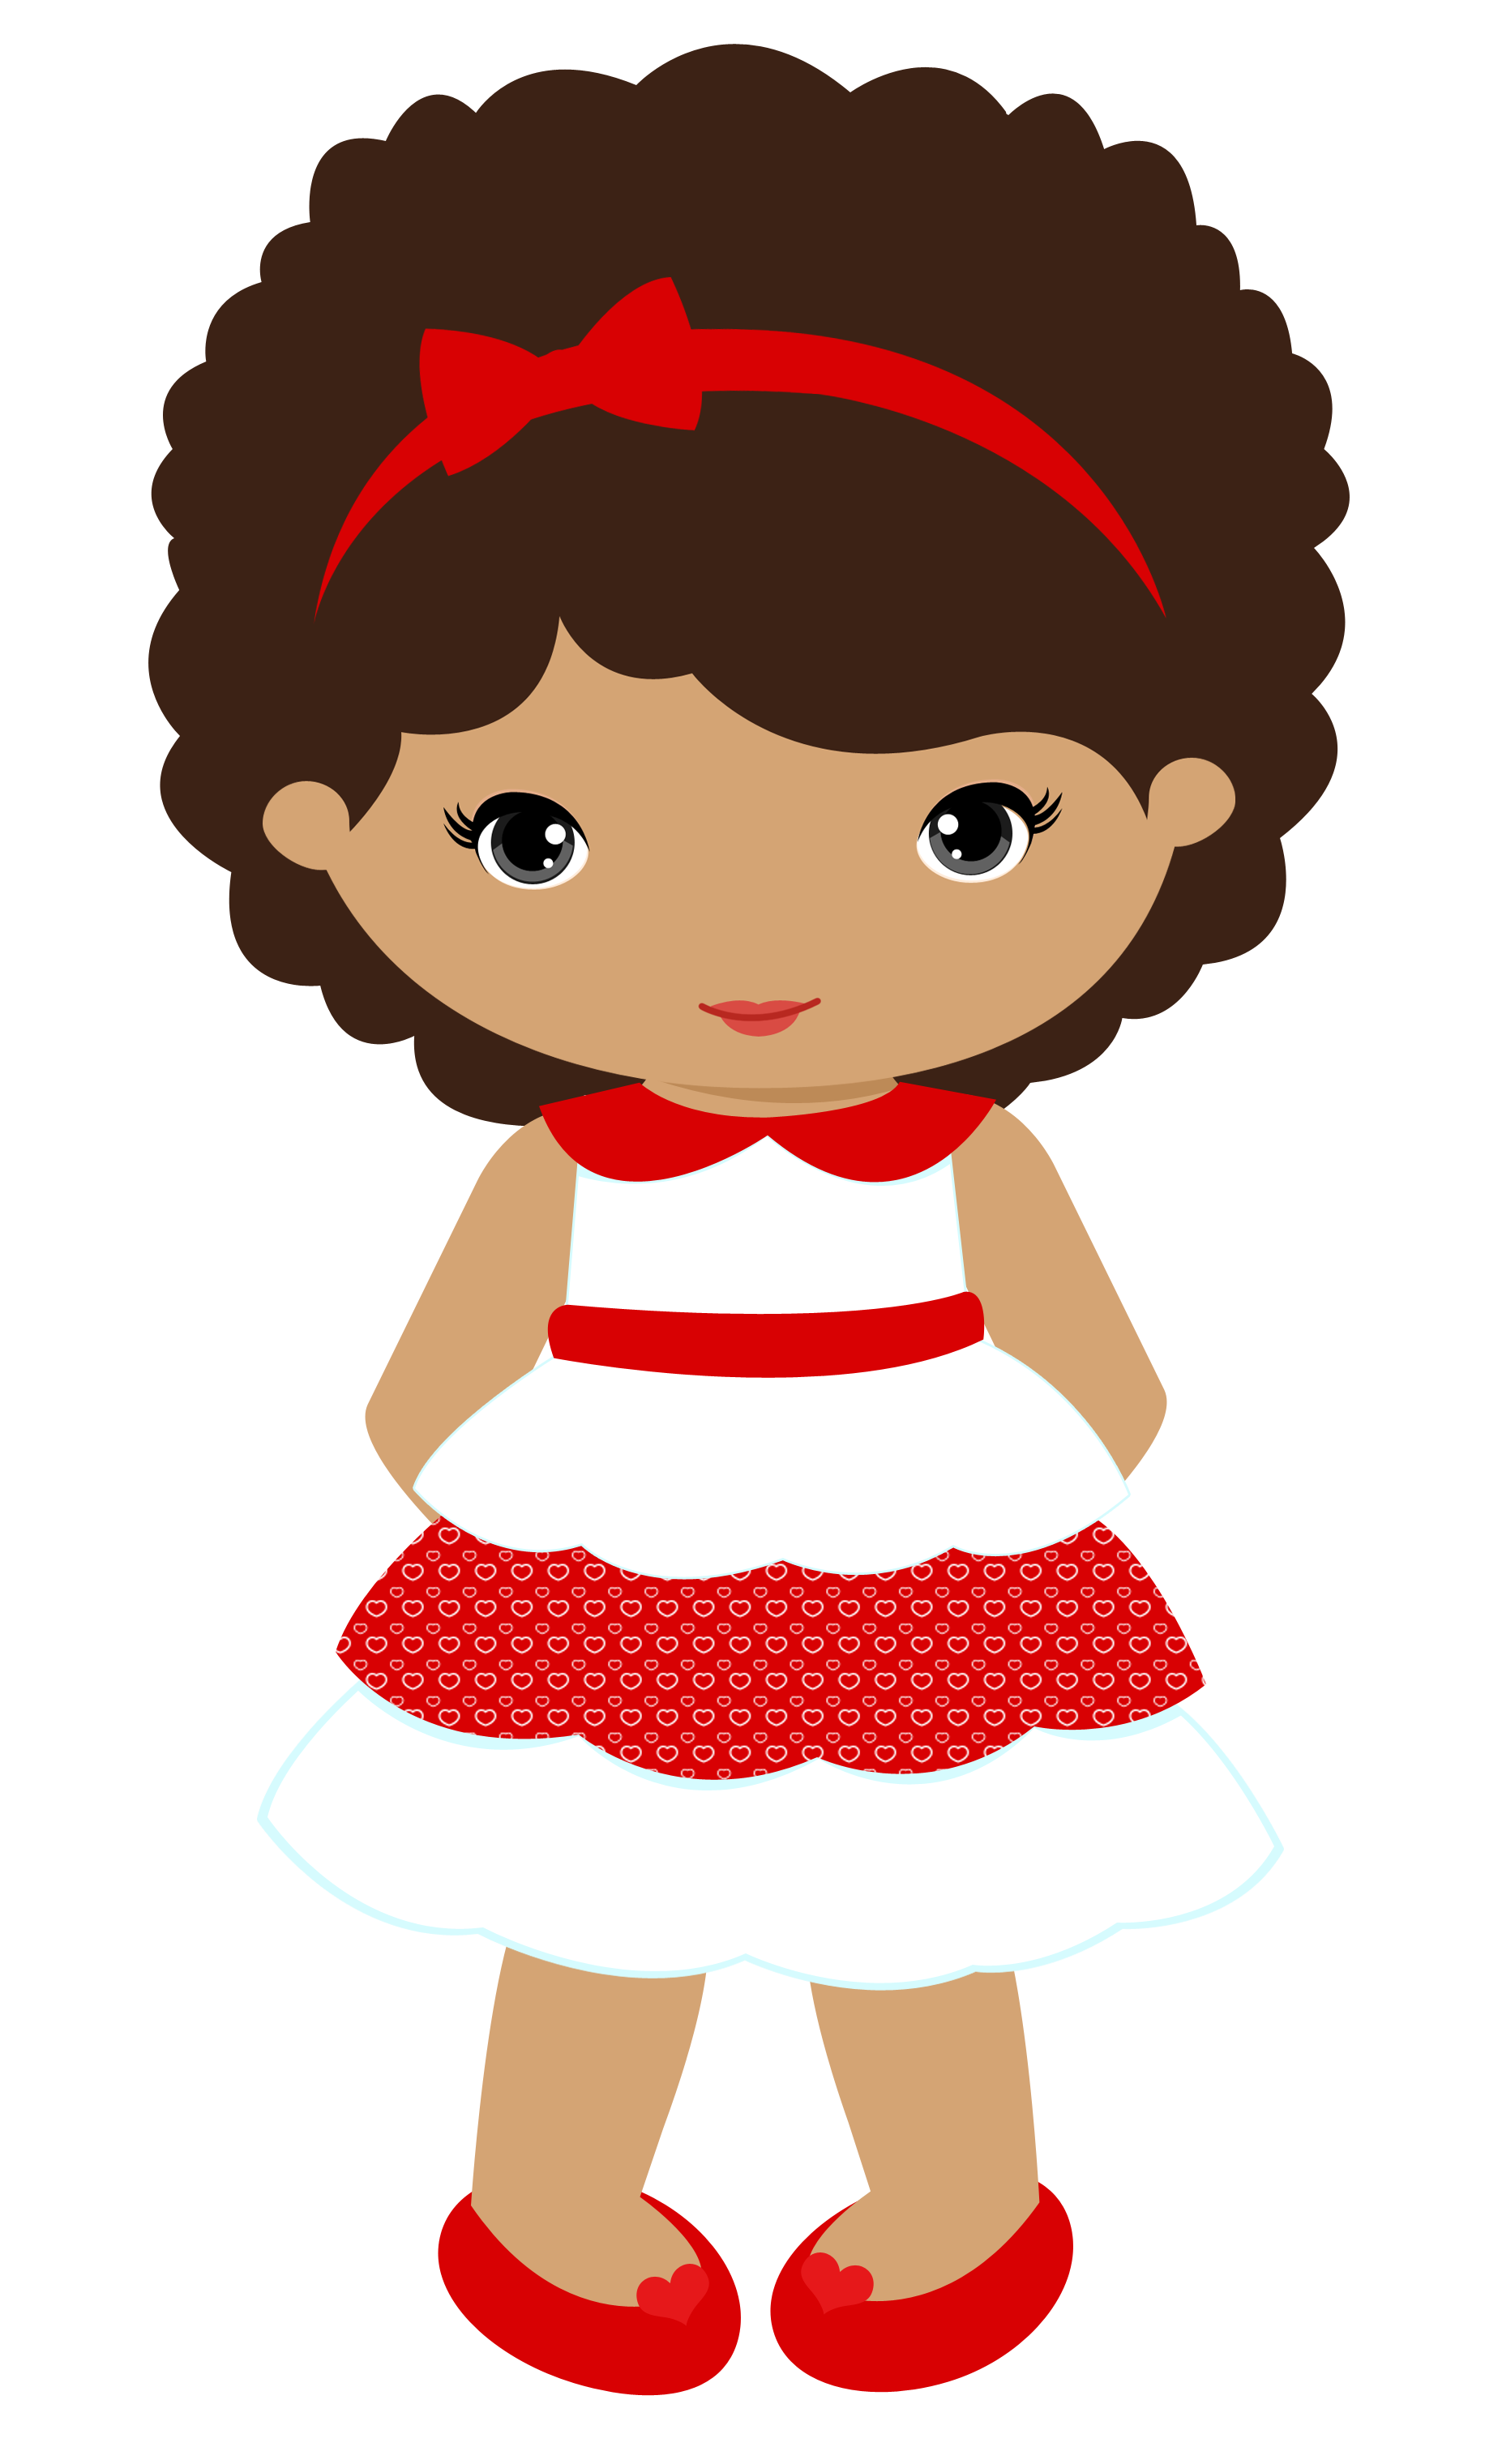 Red Hair clipart kid hair #9